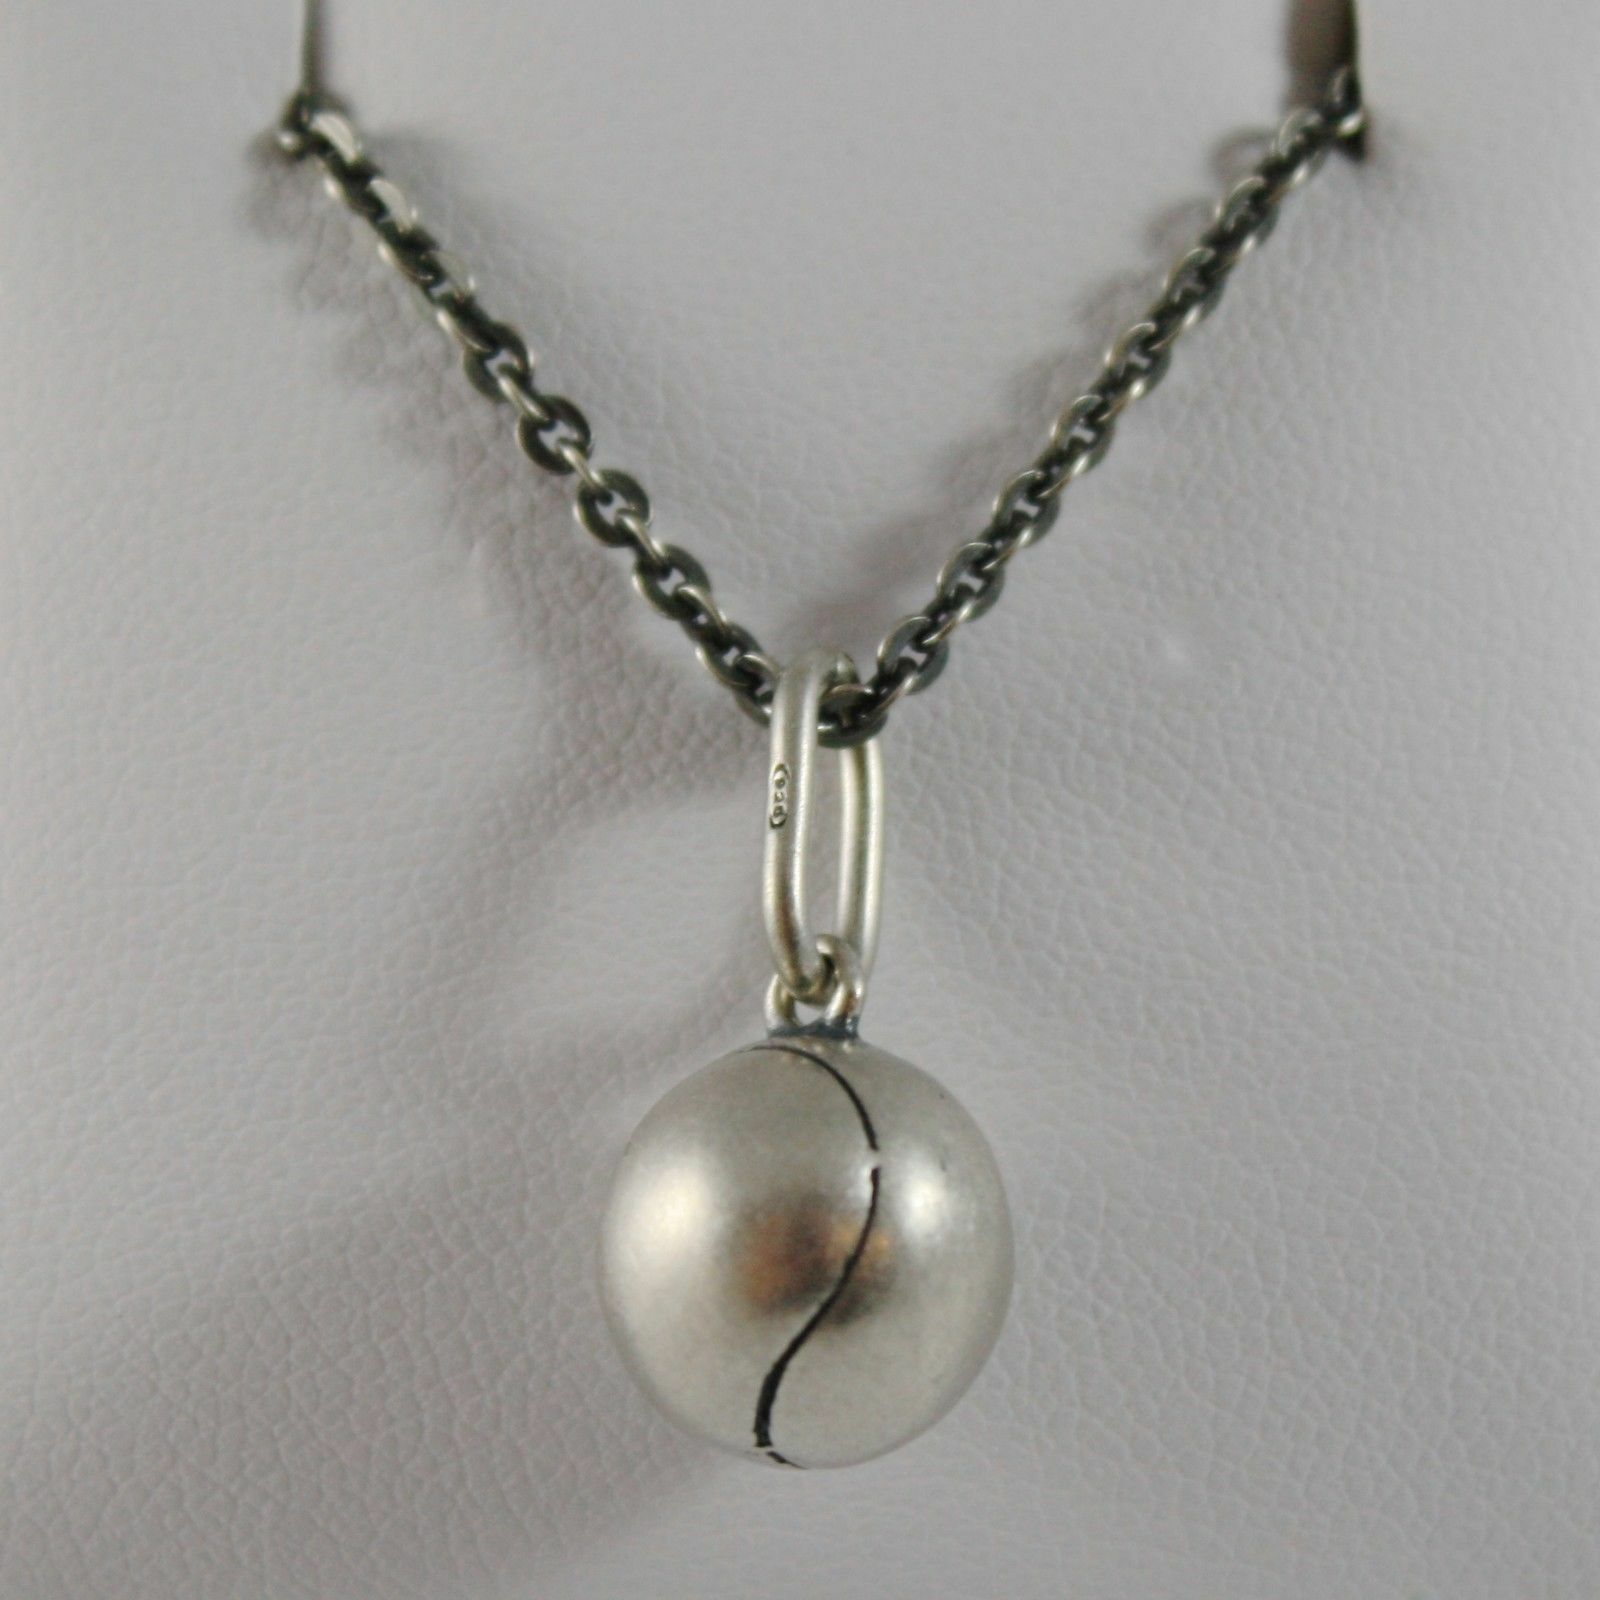 925 Sterling Silver Necklace Burnished Pendant Ball Tennis Made in Italy